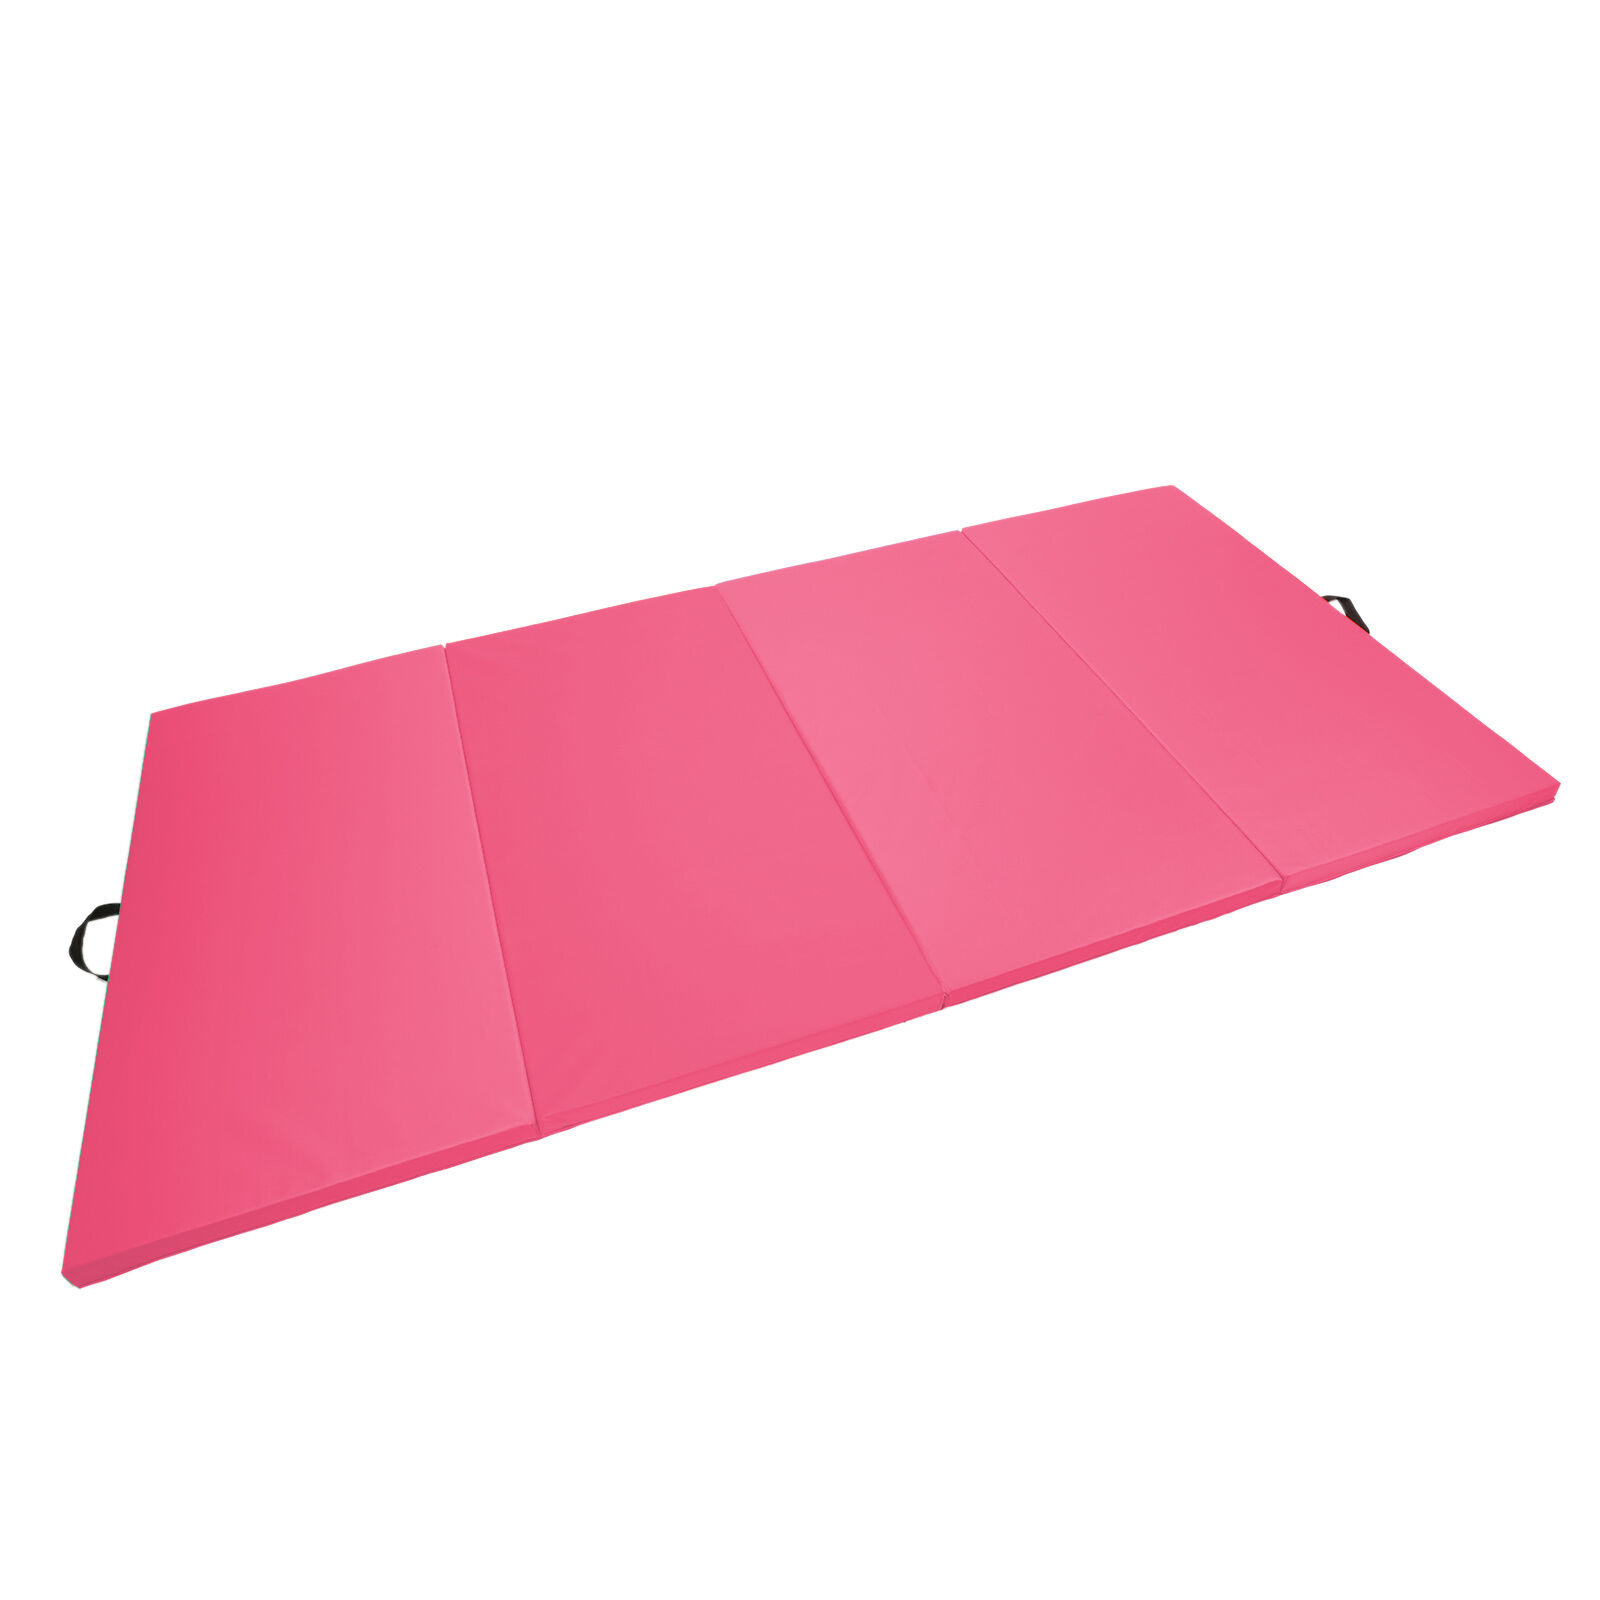 Gymnastics Gym Folding Exercise Mat Gymnastics Tumbling